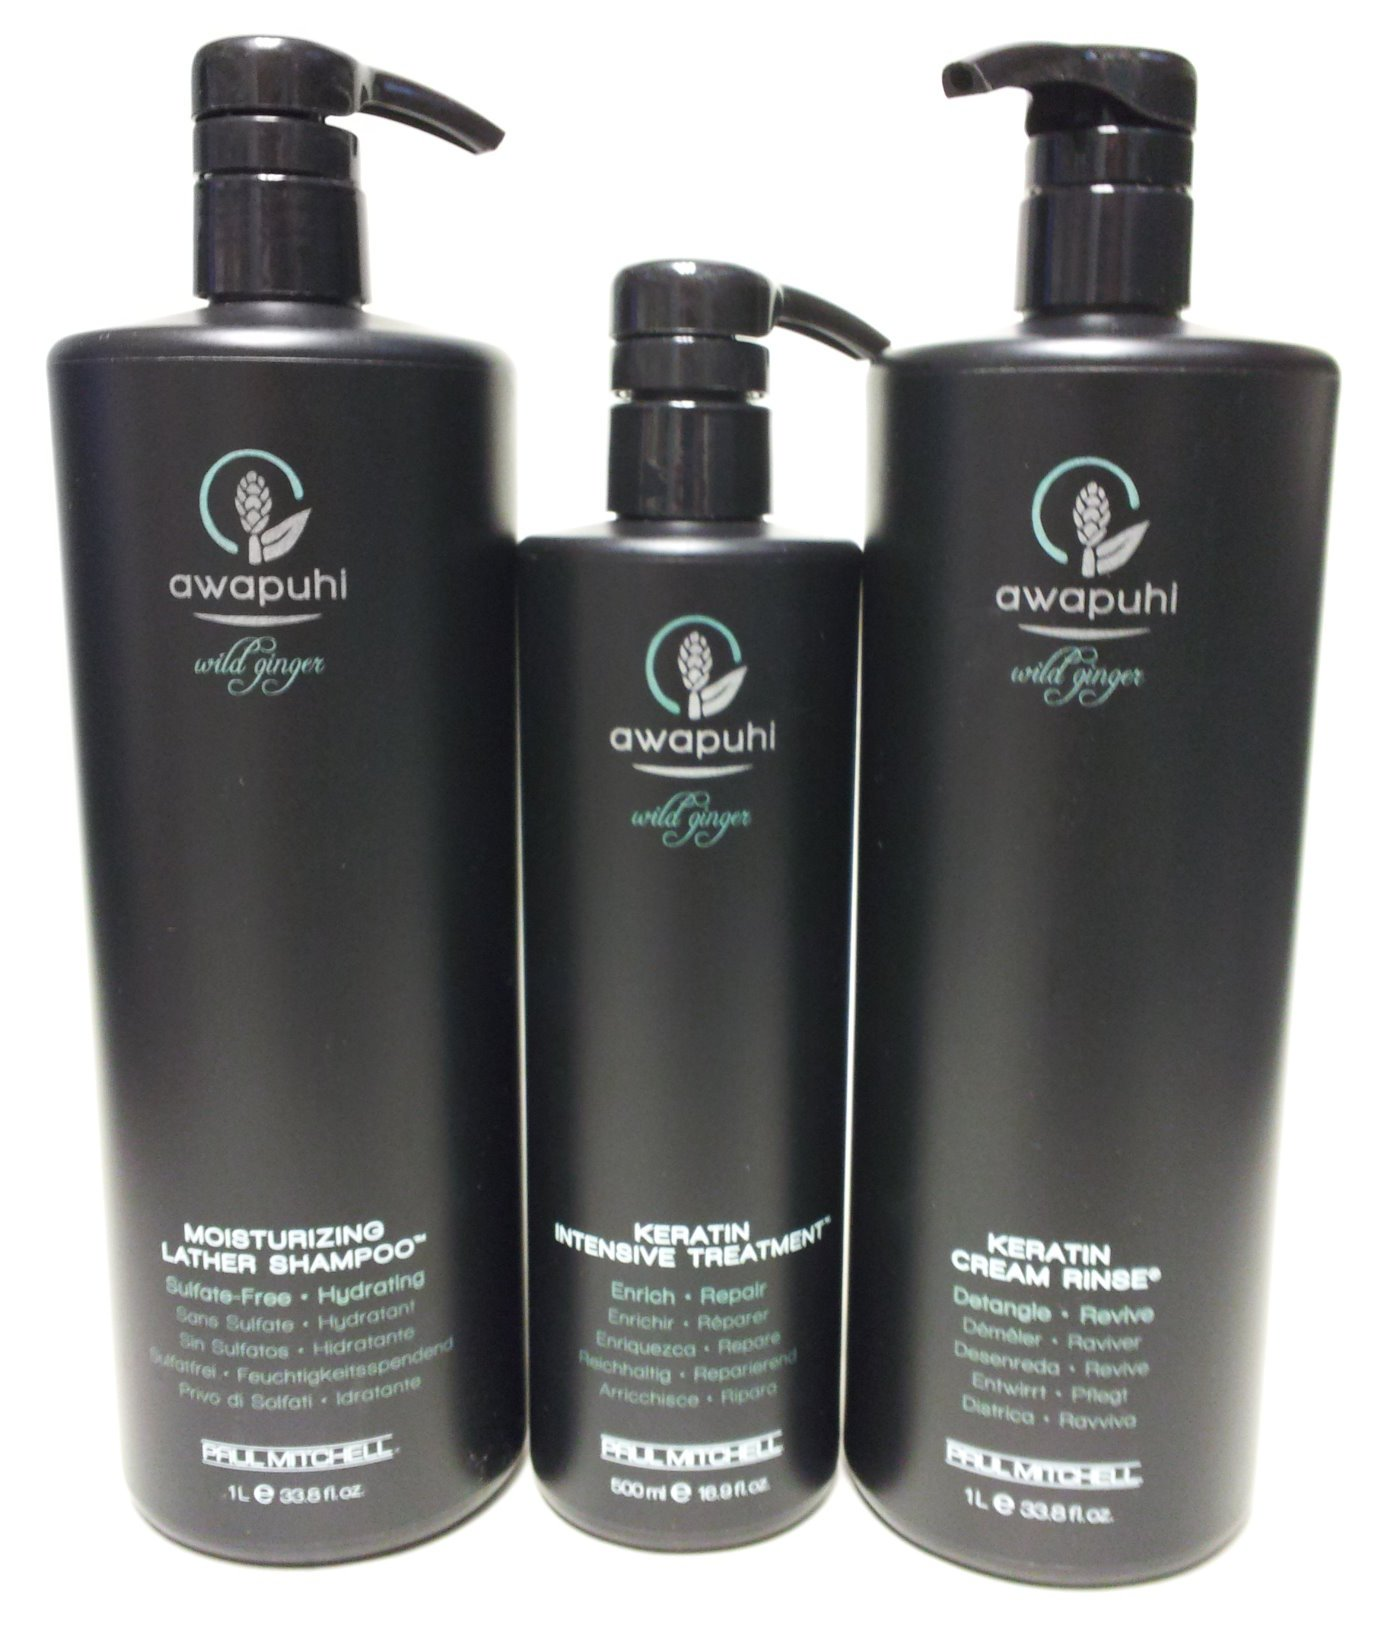 Paul Mitchell Awapuhi Wild Ginger Moisturizing Lather Shampoo (33.8 Oz.), Keratin Cream Rinse (33.8 Oz.) and Keratin Intensive Treatment (16.9 Oz.) Set